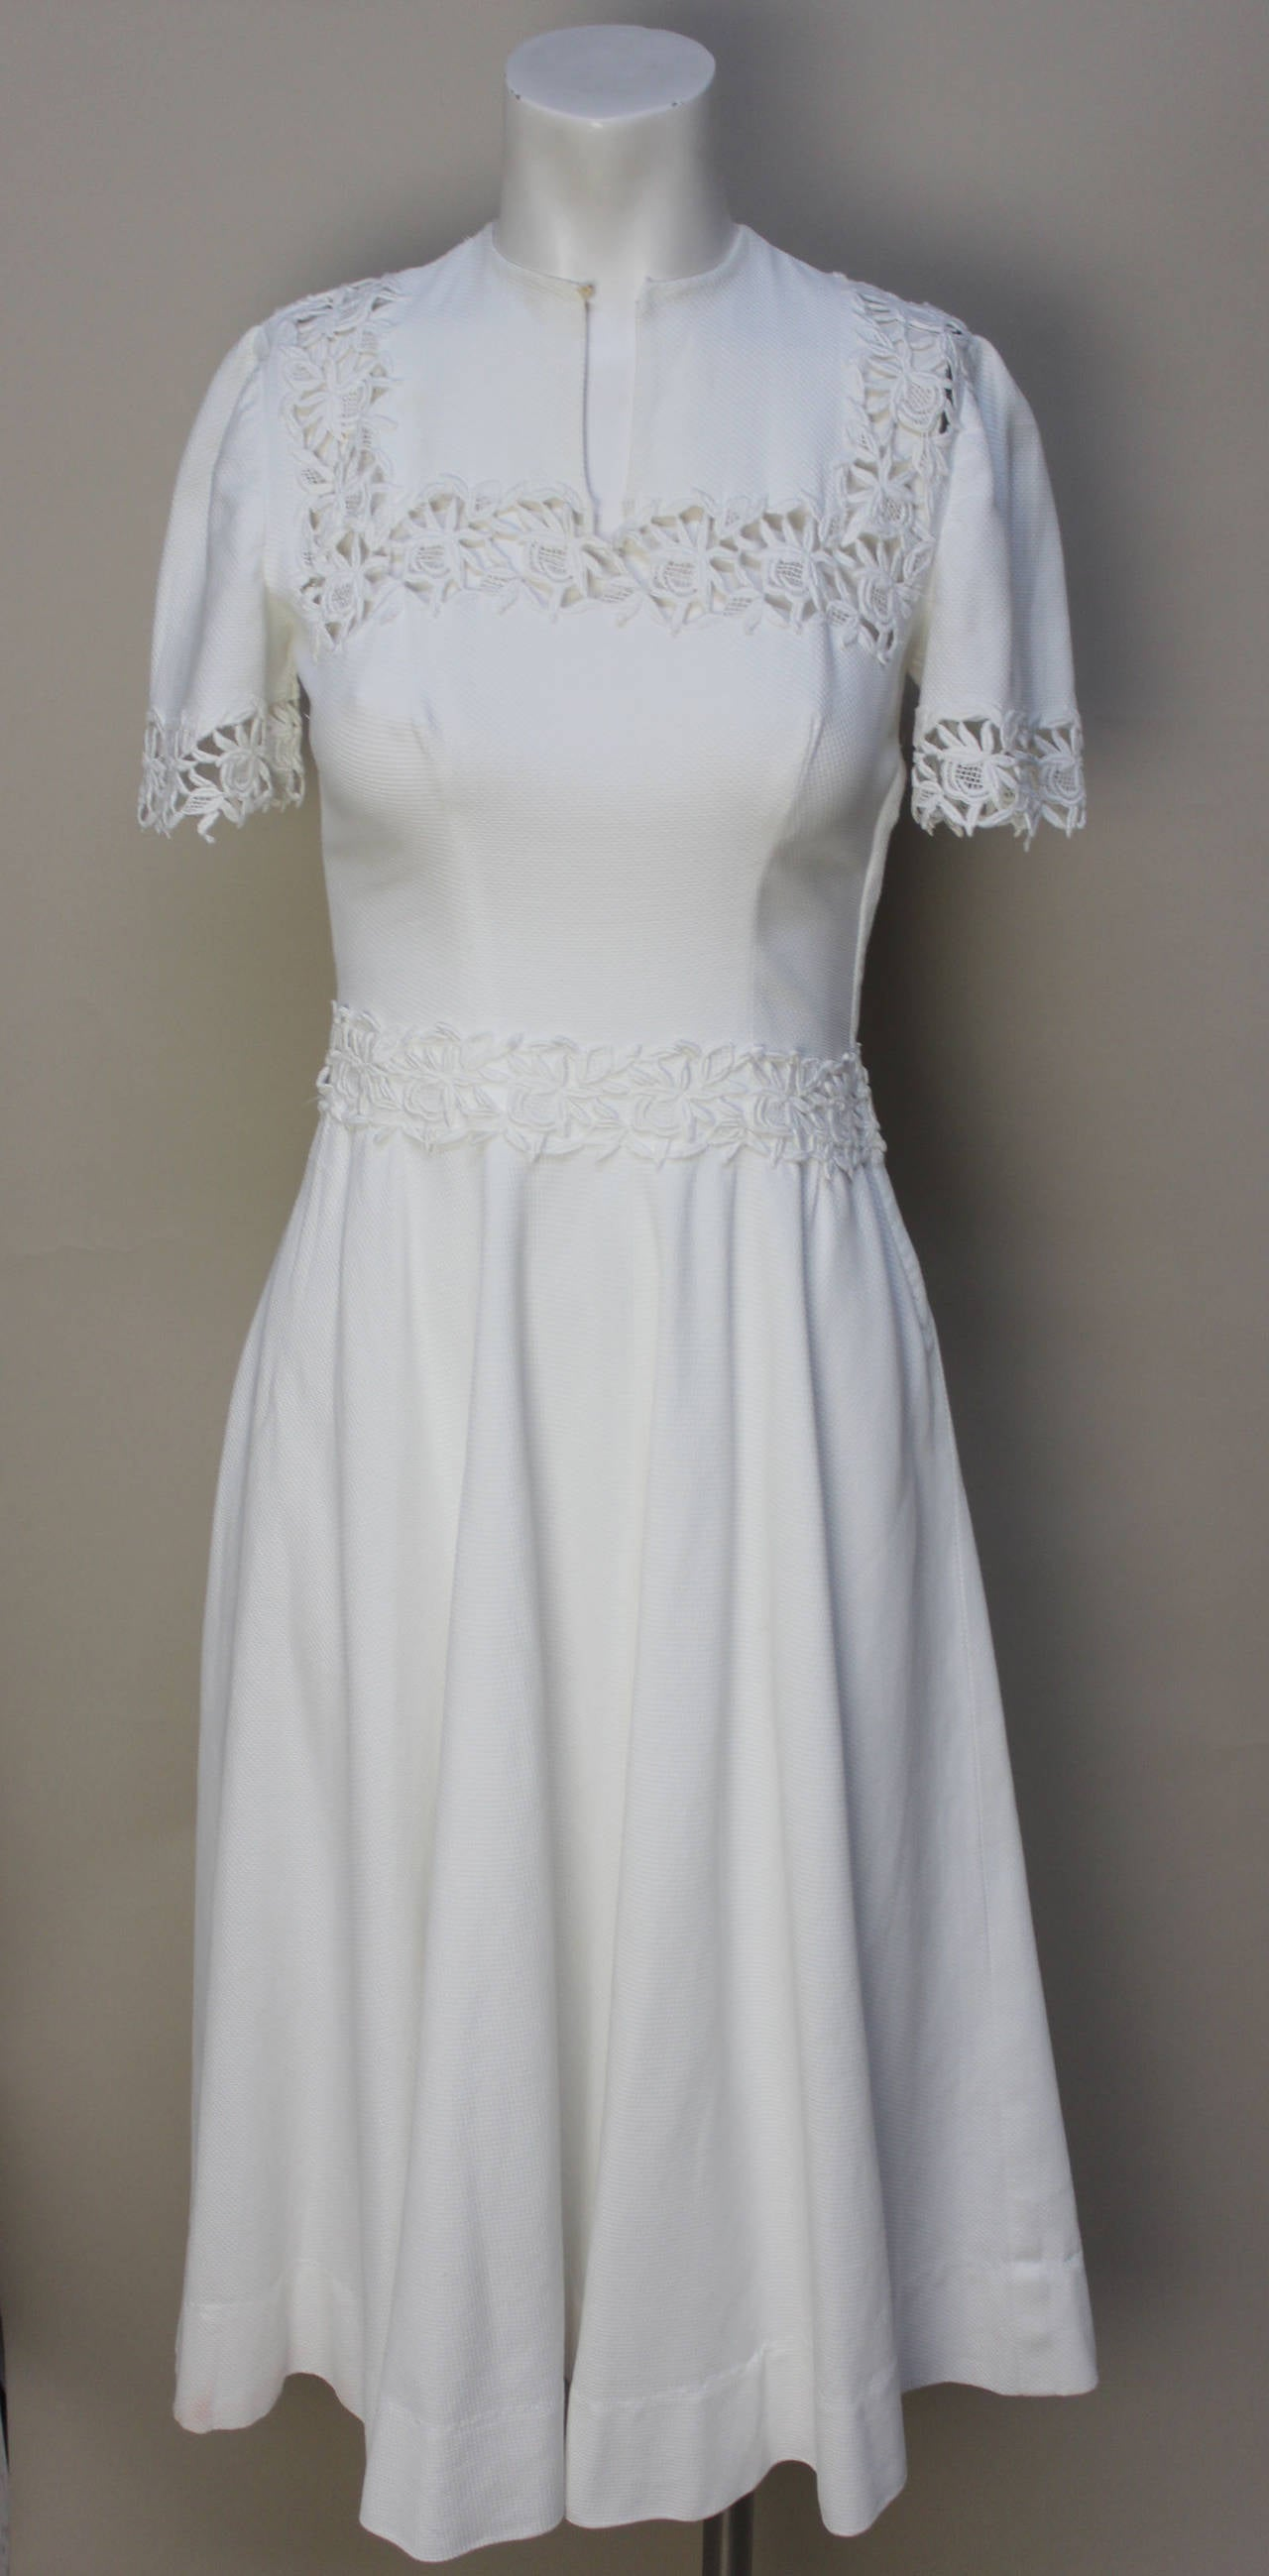 SALE! Originally $295